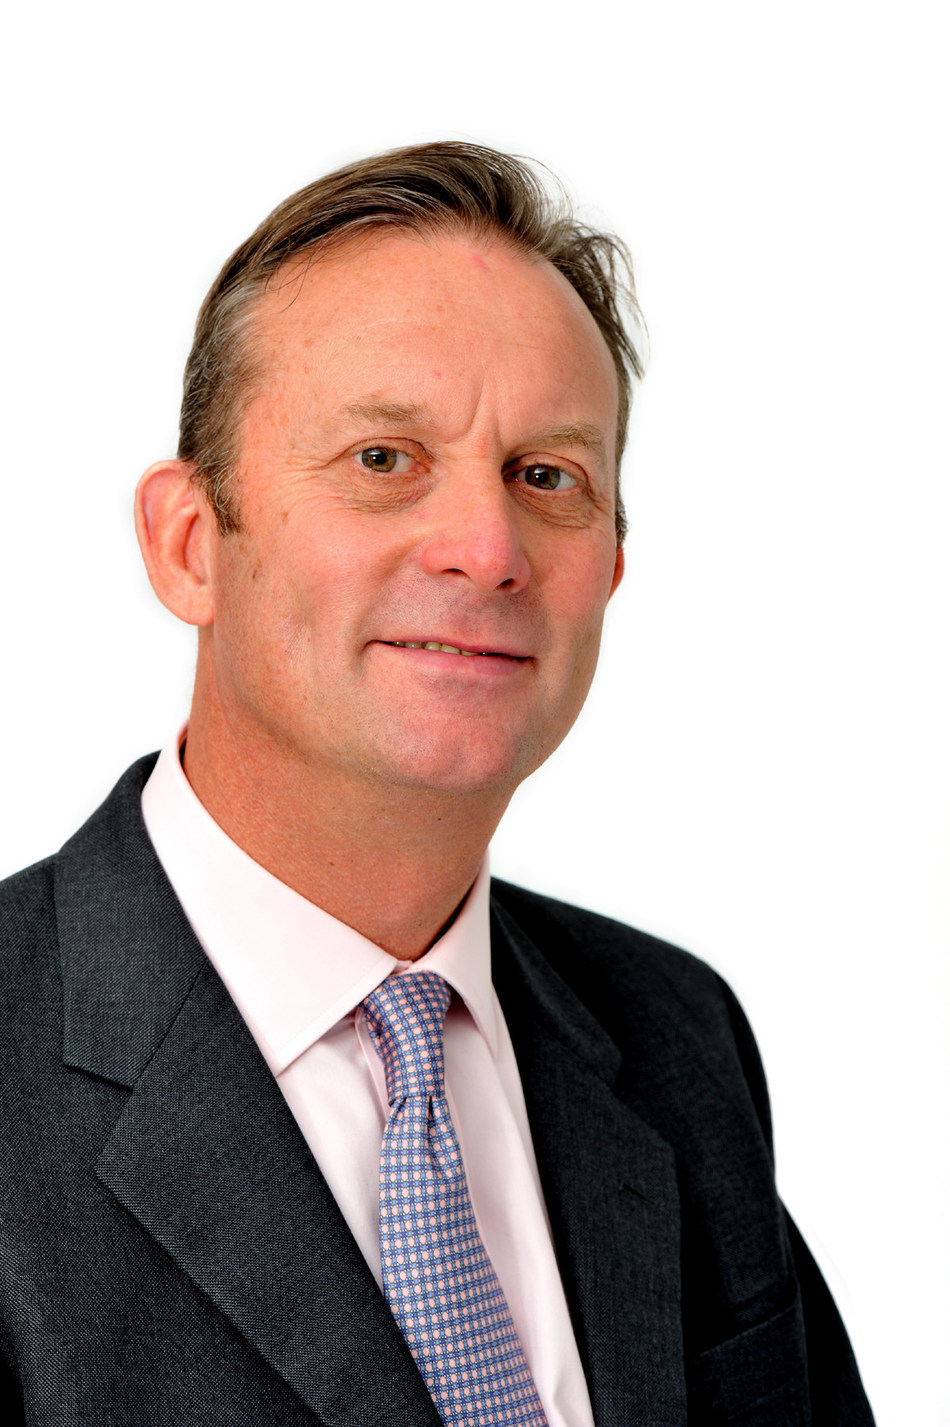 Robert Patten has been appointed Head of Casualty at Hamilton at Lloyd's